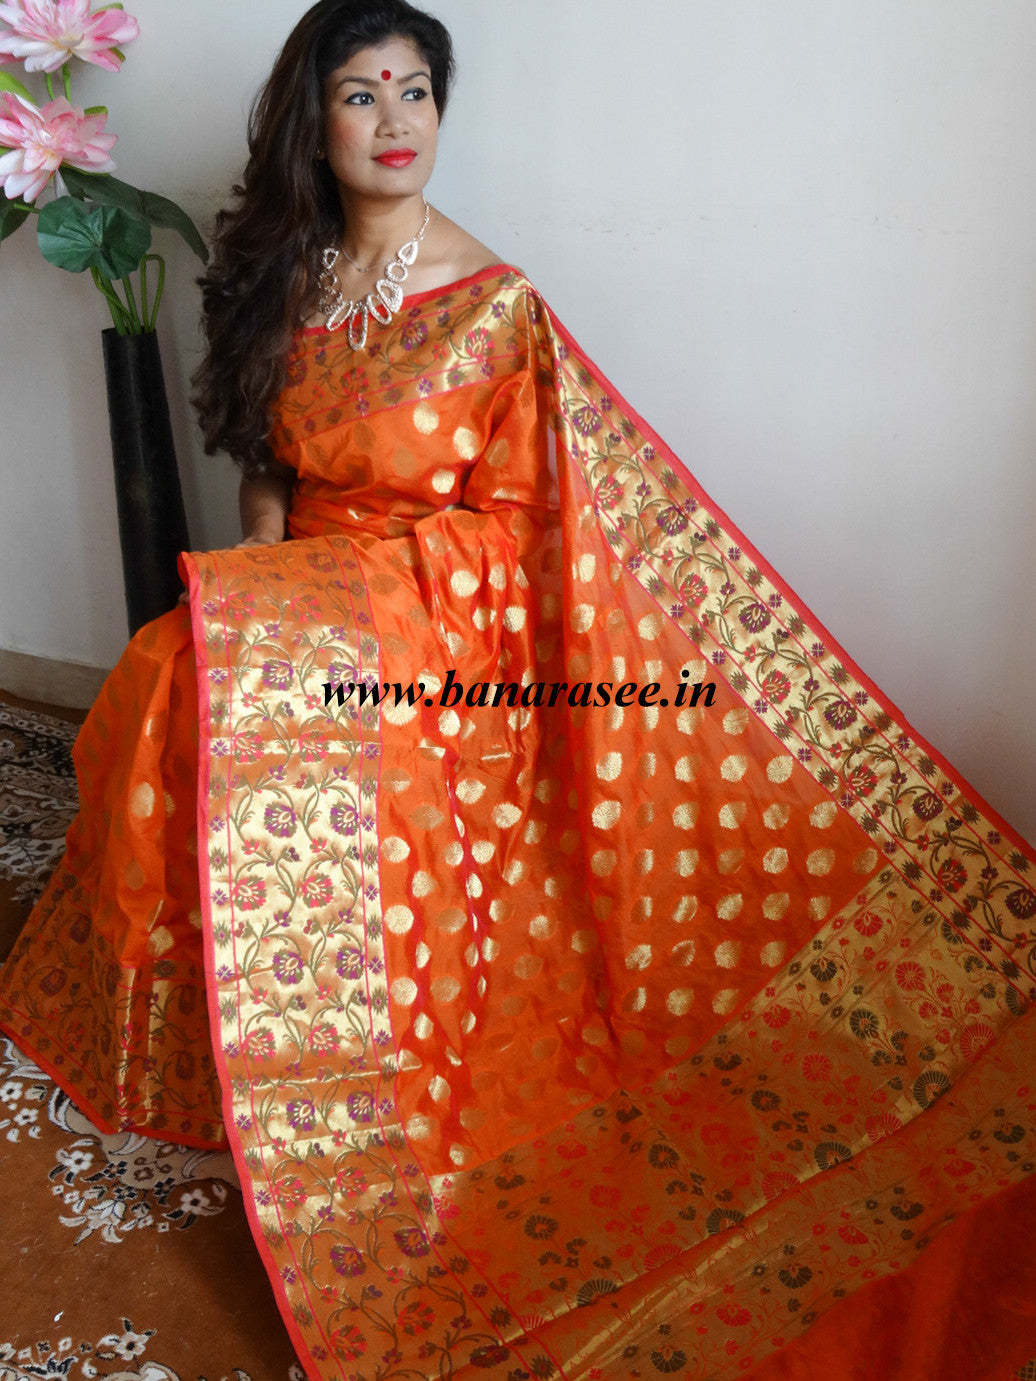 Banarasee Cotton Silk Mix Saree with Zari Work Paithani Border-Orange